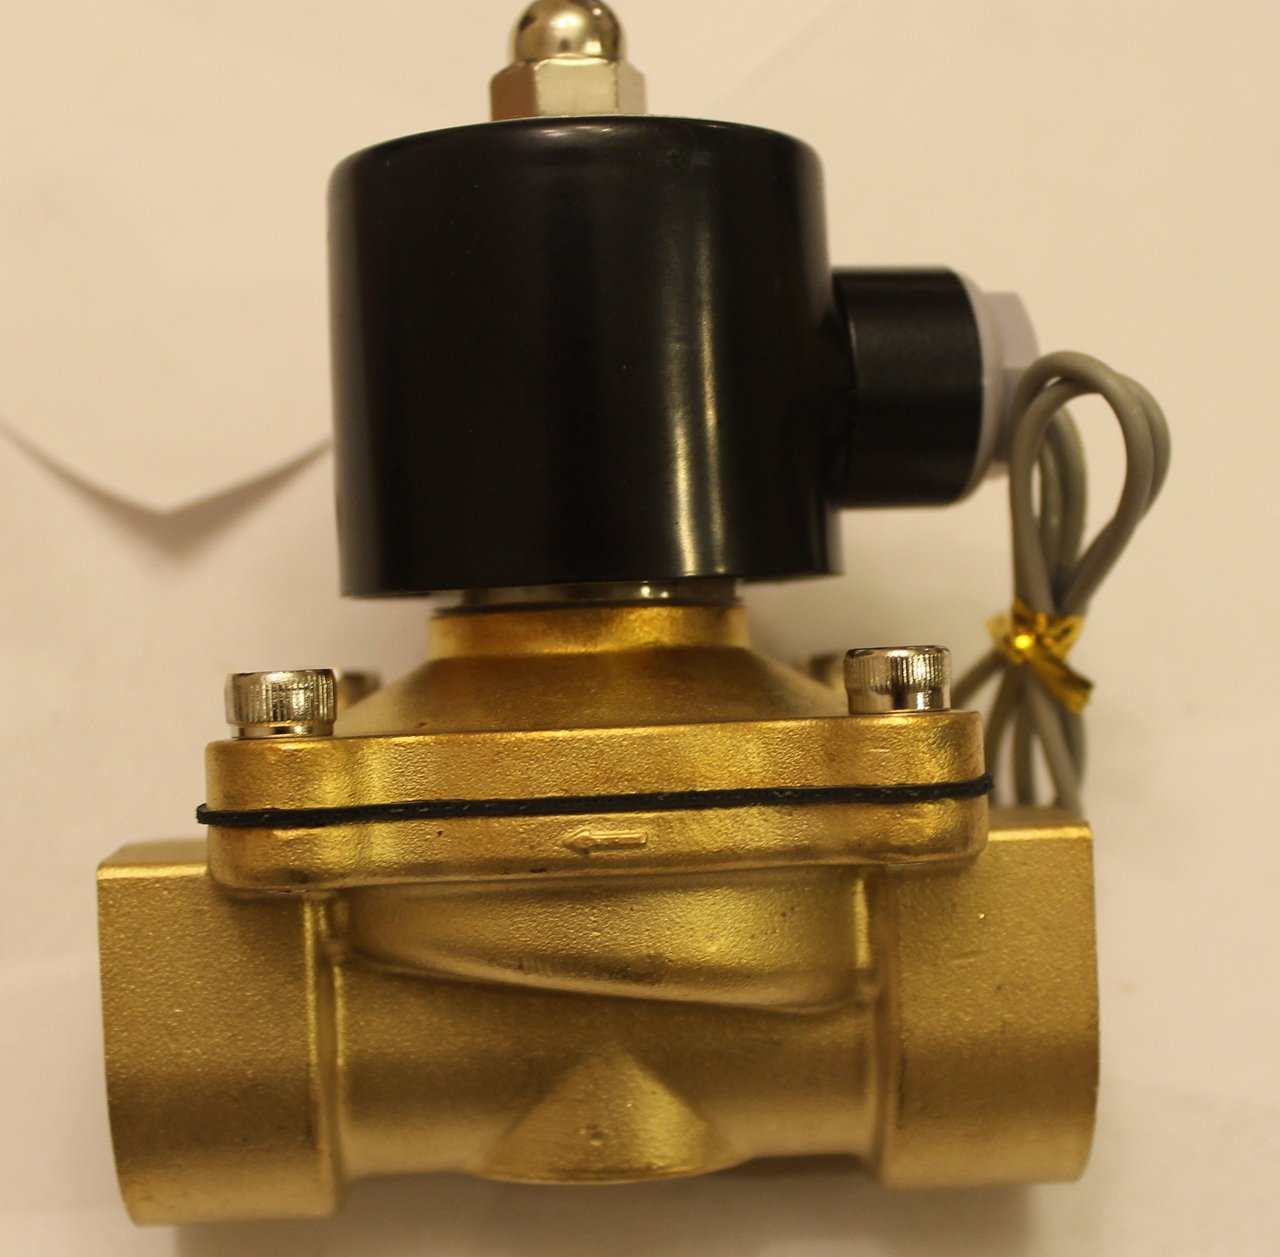 1 Inch Solenoid Valve 110v/115v/120v AC Brass Electric Air Water Gas Diesel Normally Closed NPT High Flow by USonline911